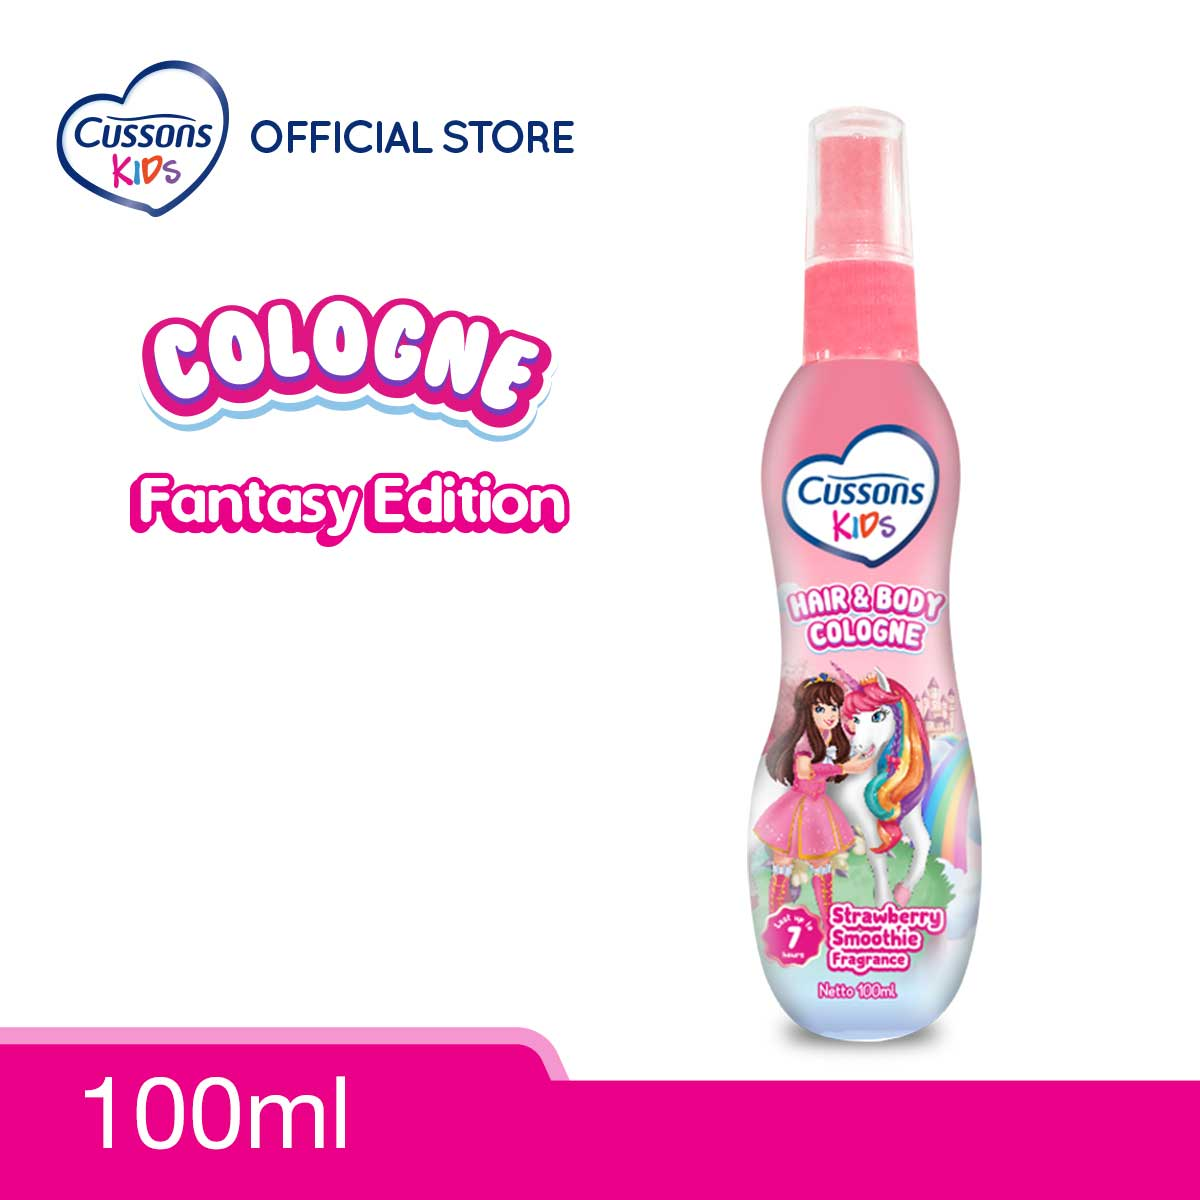 Cussons Kids Hair & Body Cologne Unicorn Strawberry Smoothie 100ml